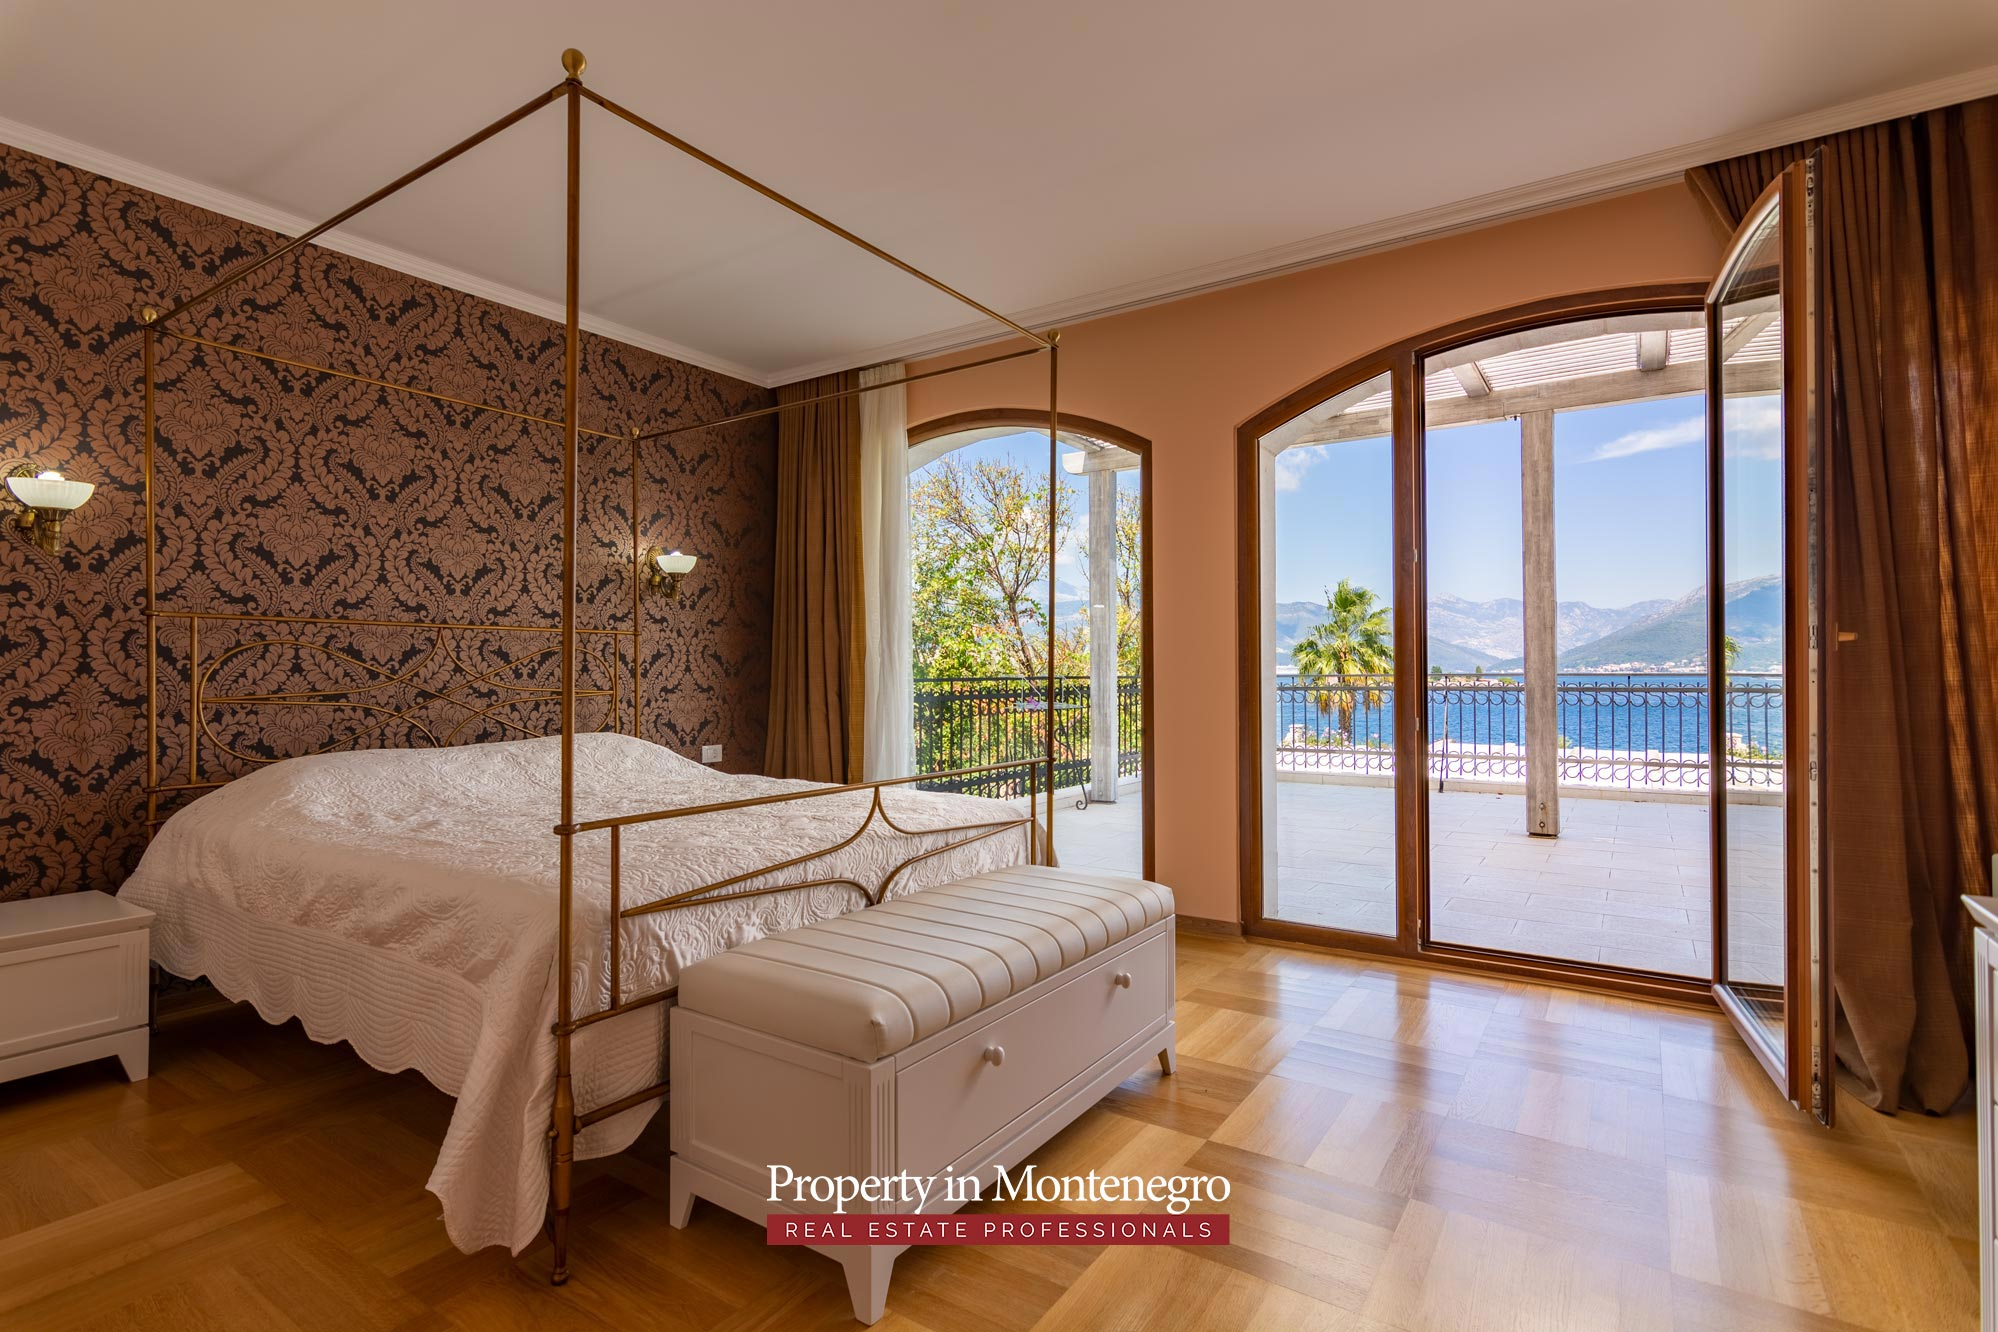 First line luxury villa for sale in Tivat